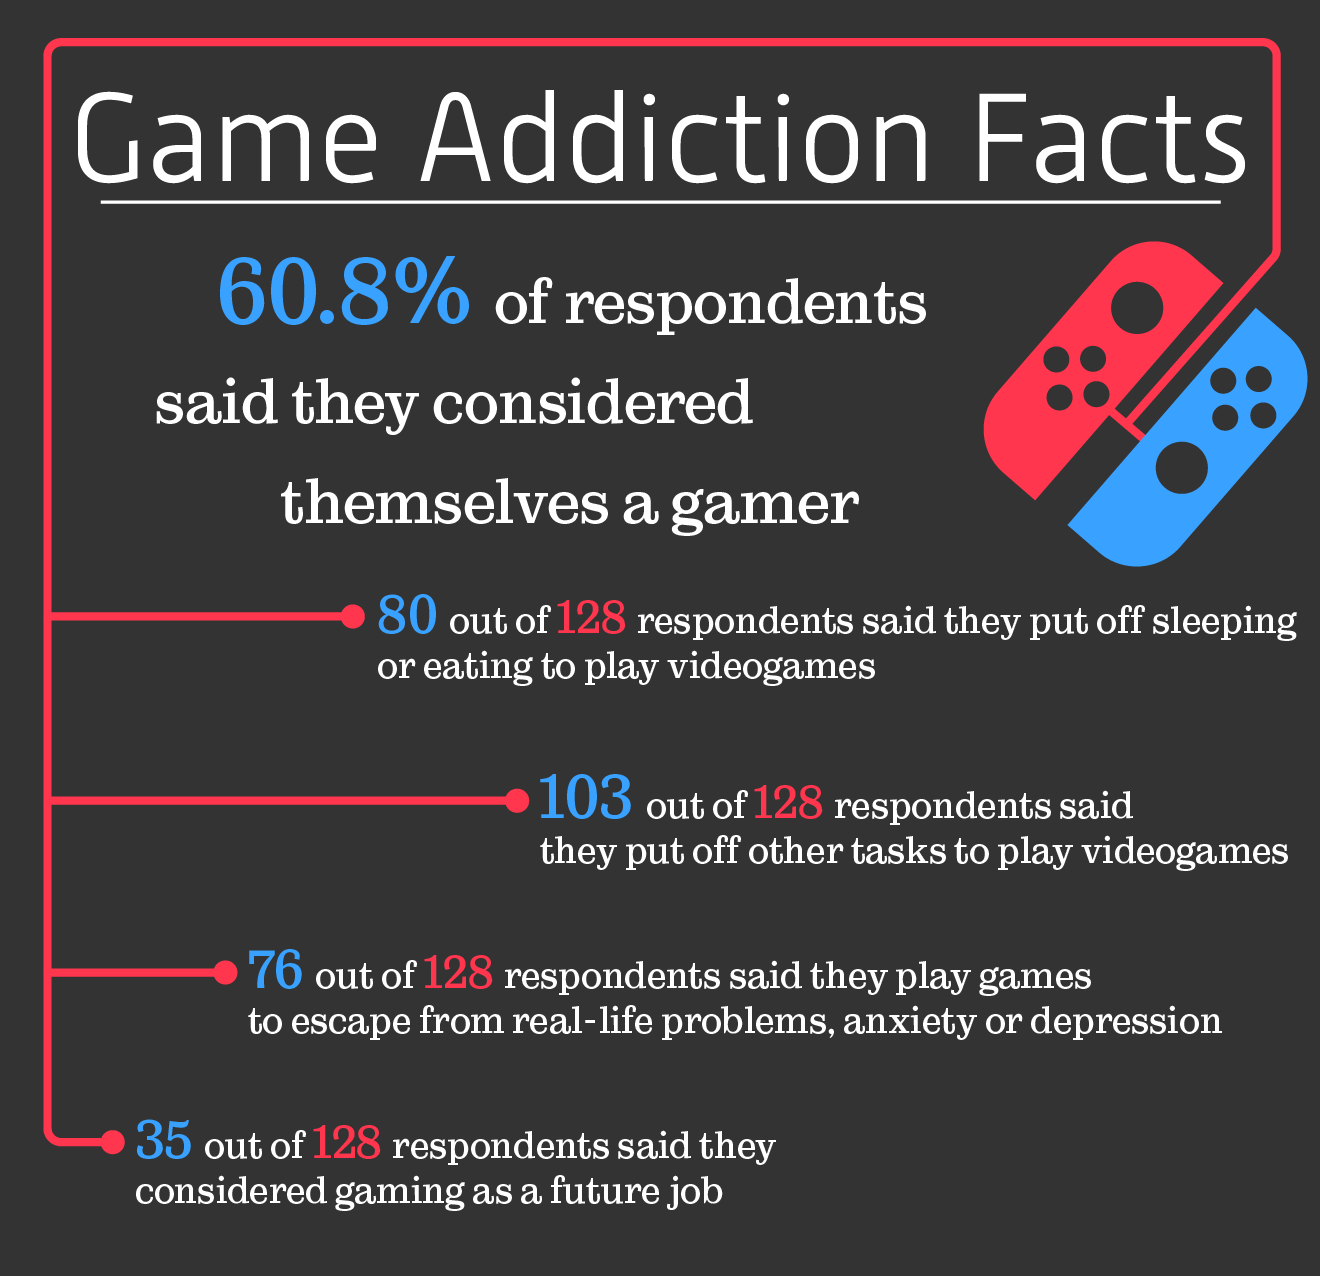 Game addiction